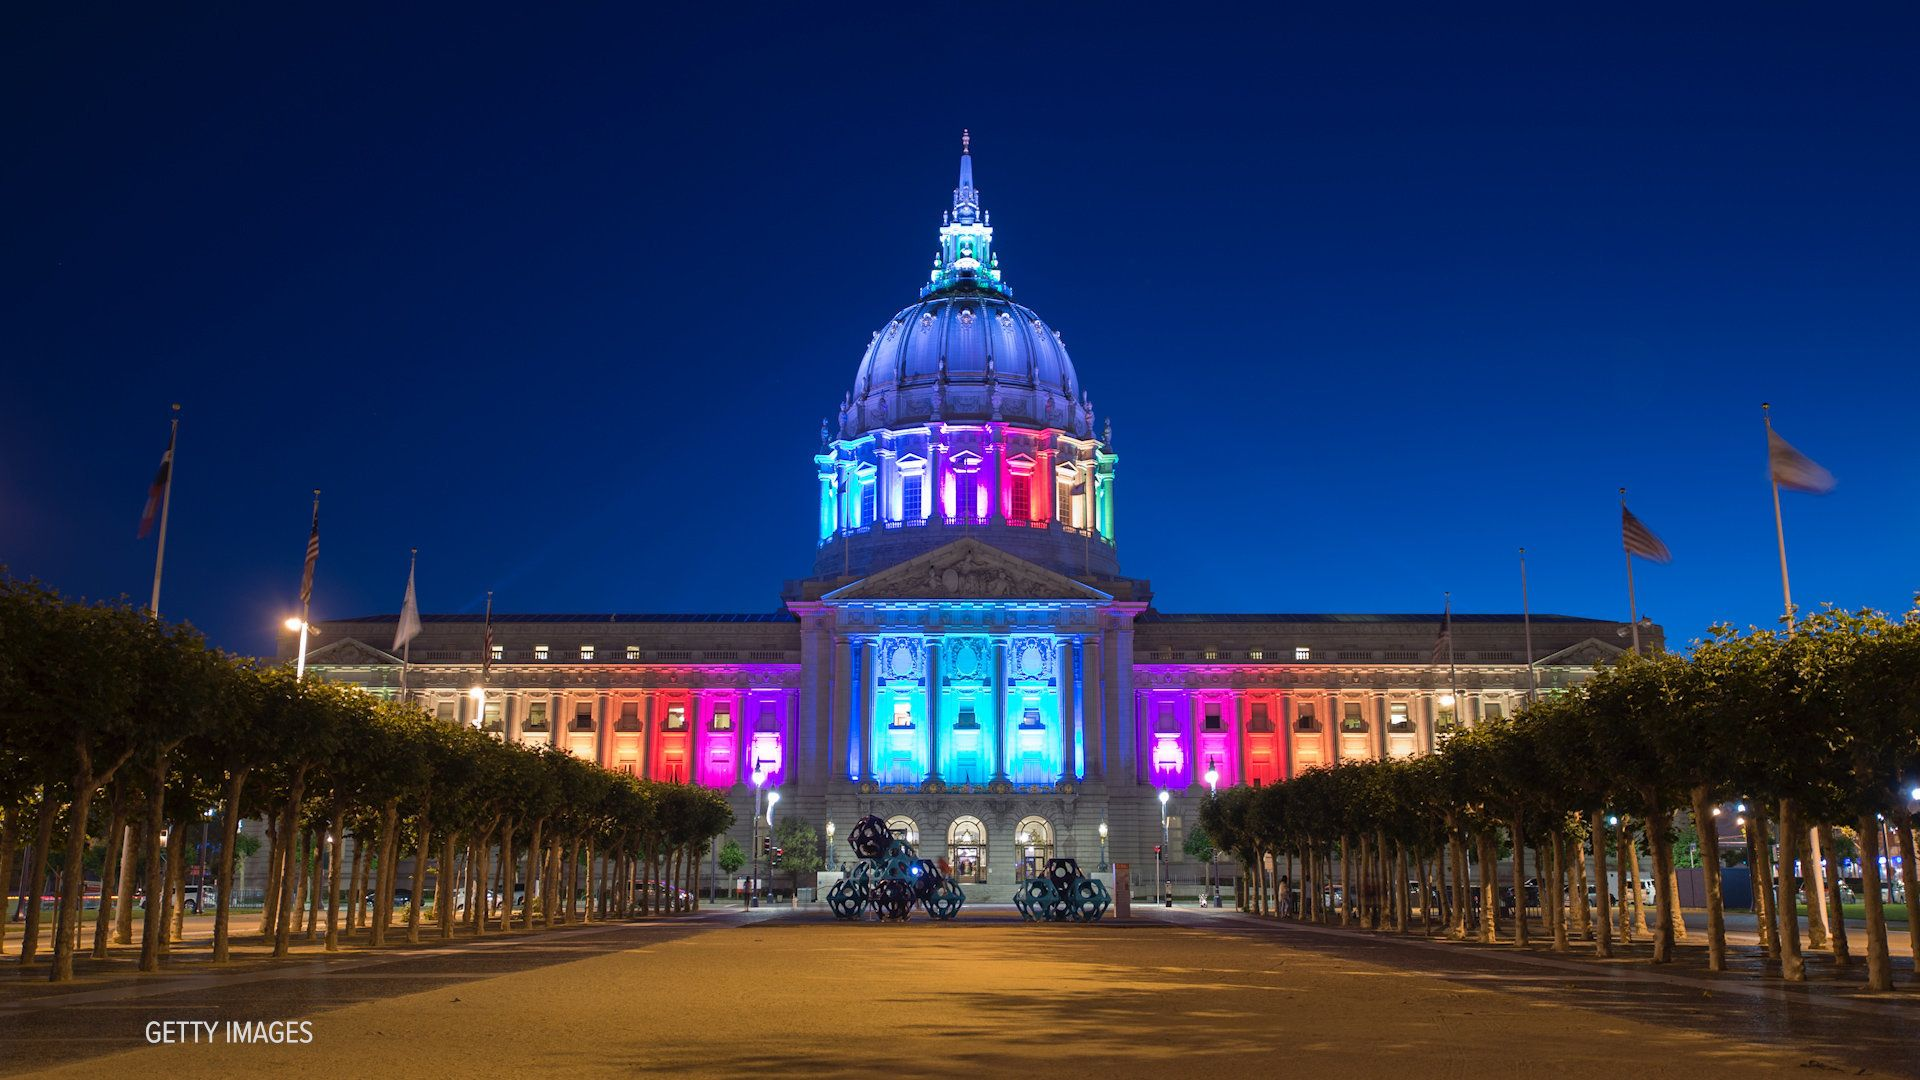 Several monuments light up for Pride each year